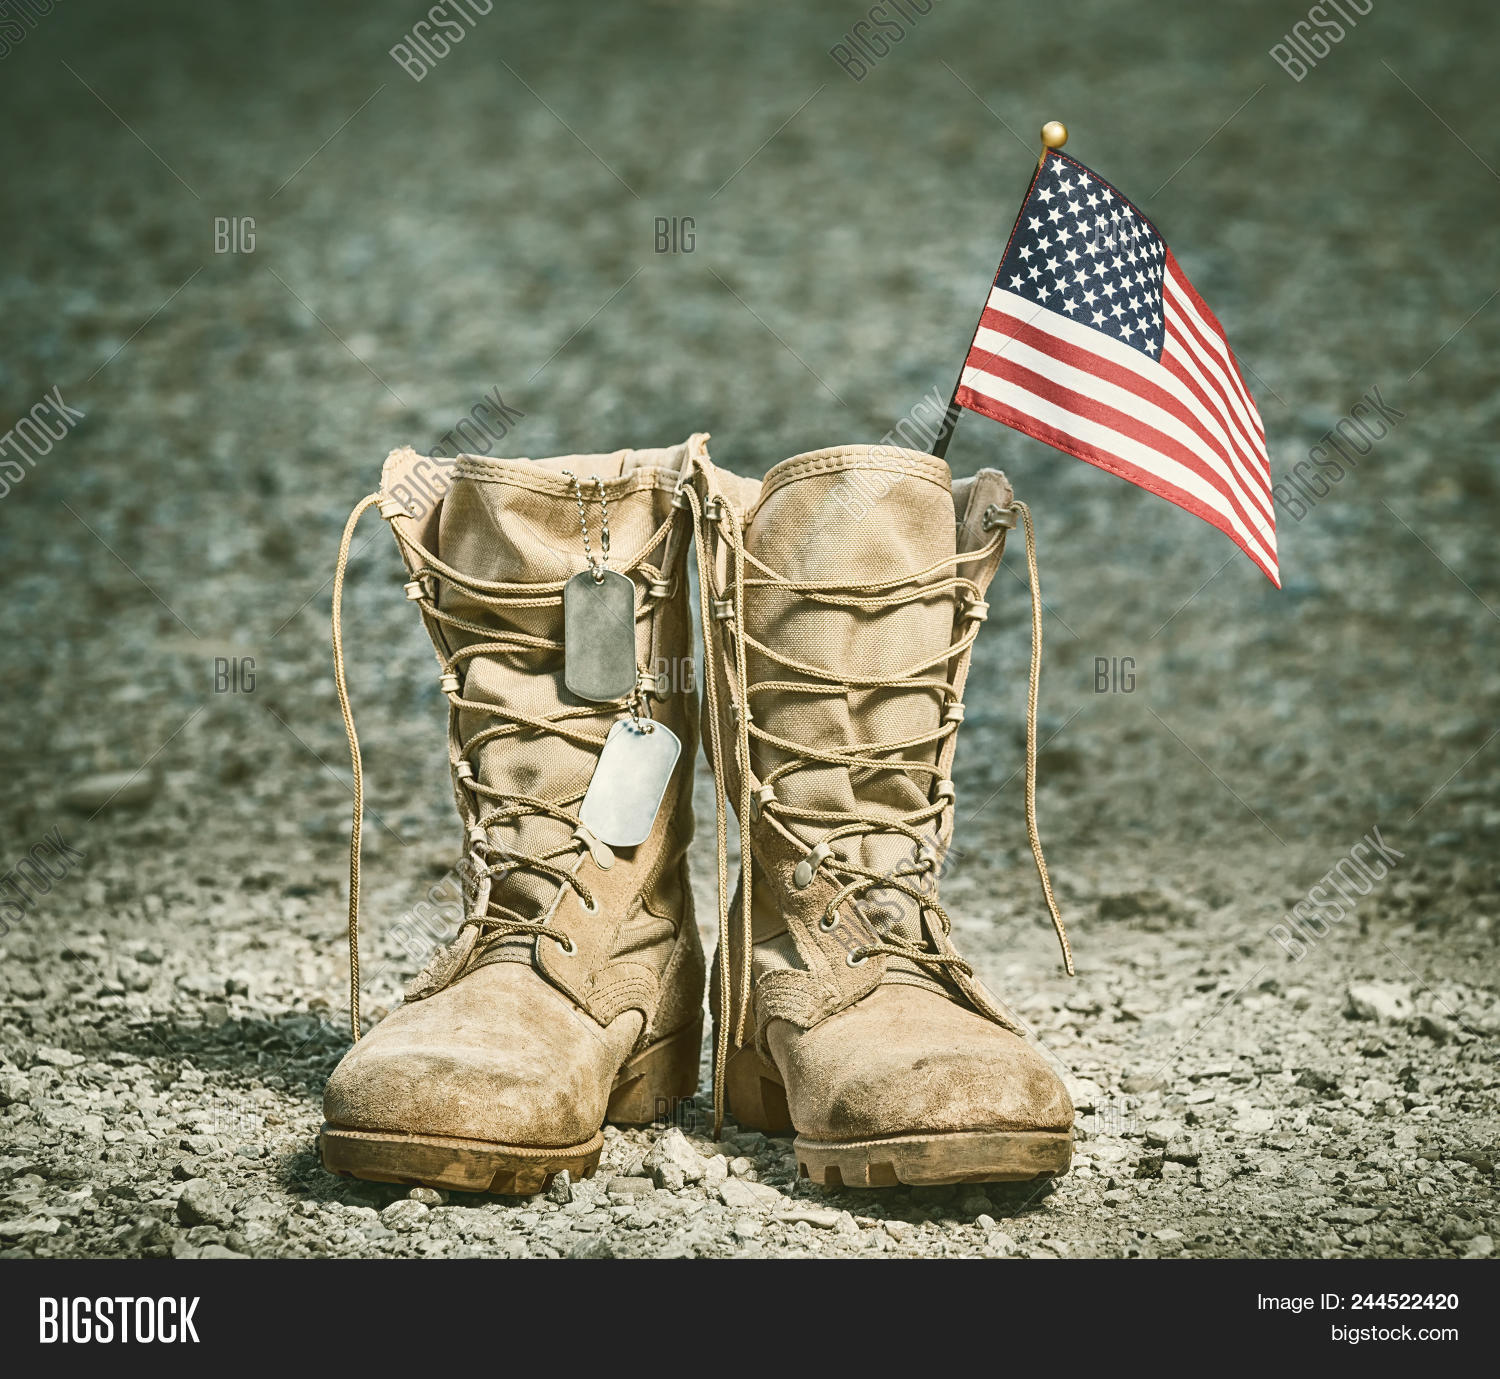 Sates,USA,United,american,army,blue,boots,brown,combat,day,desert,dog,dusty,fallen,flag,freedom,gear,gravel,gray,green,honor,identification,independence,liberty,memorial,military,month,old,outdoors,pair,patriot,patriotic,patriotism,red,rocky,sacrifice,shoes,soldier,stars,stripes,symbol,tag,tan,uniform,veteran,vintage,war,warrior,white